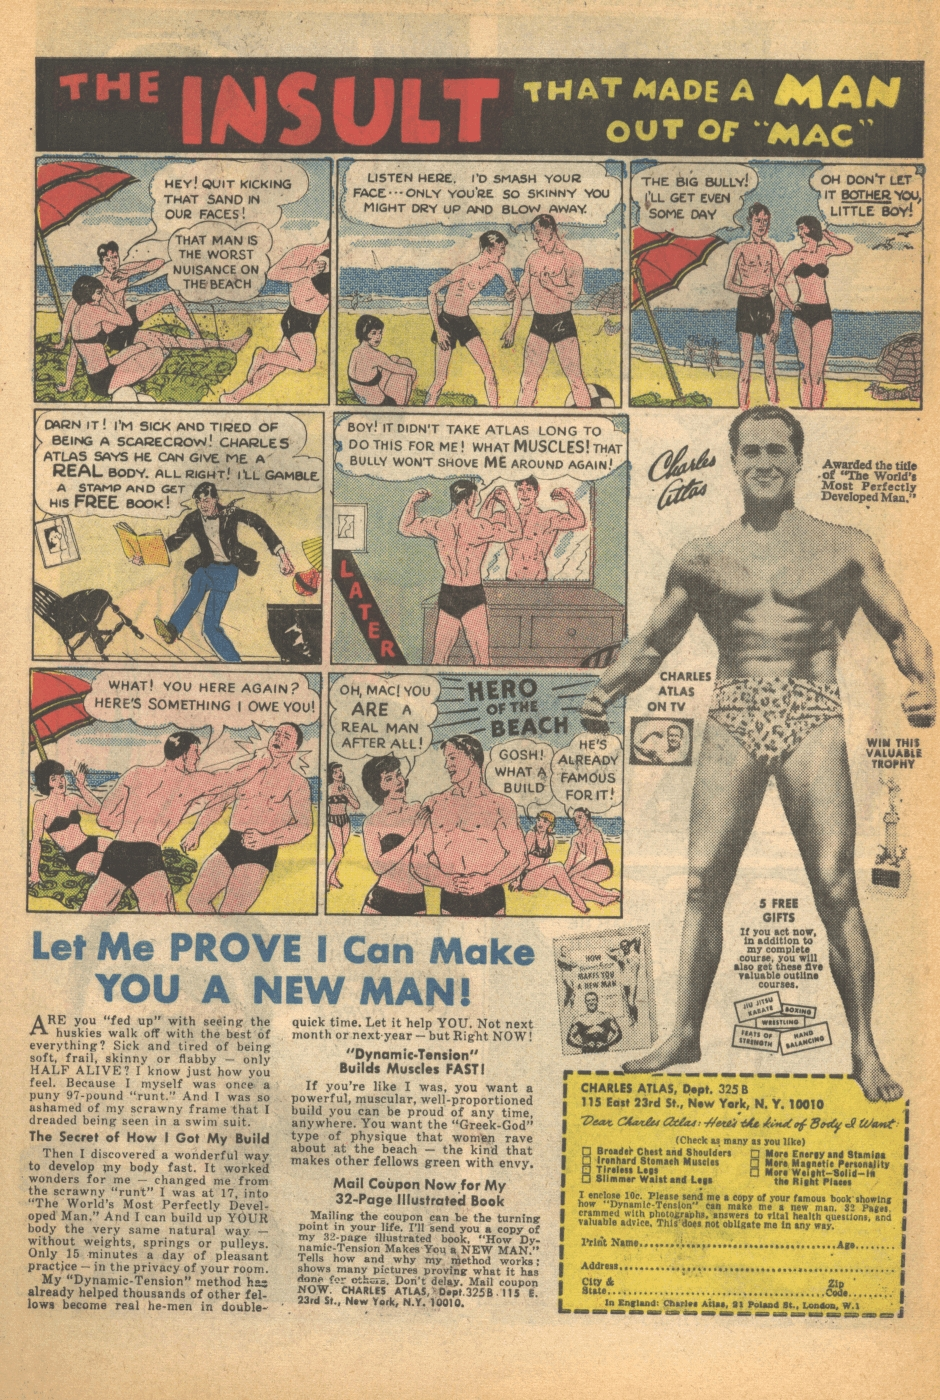 The Yeti Speaks My Own Charles Atlas Ad Parody T Shirt Surfing Kaos 3second A0168 It Was Only A Matter Of Time Then As Lover Old Comic Book Ads And Creator In Some Sense That I Put Together Version Which You Can